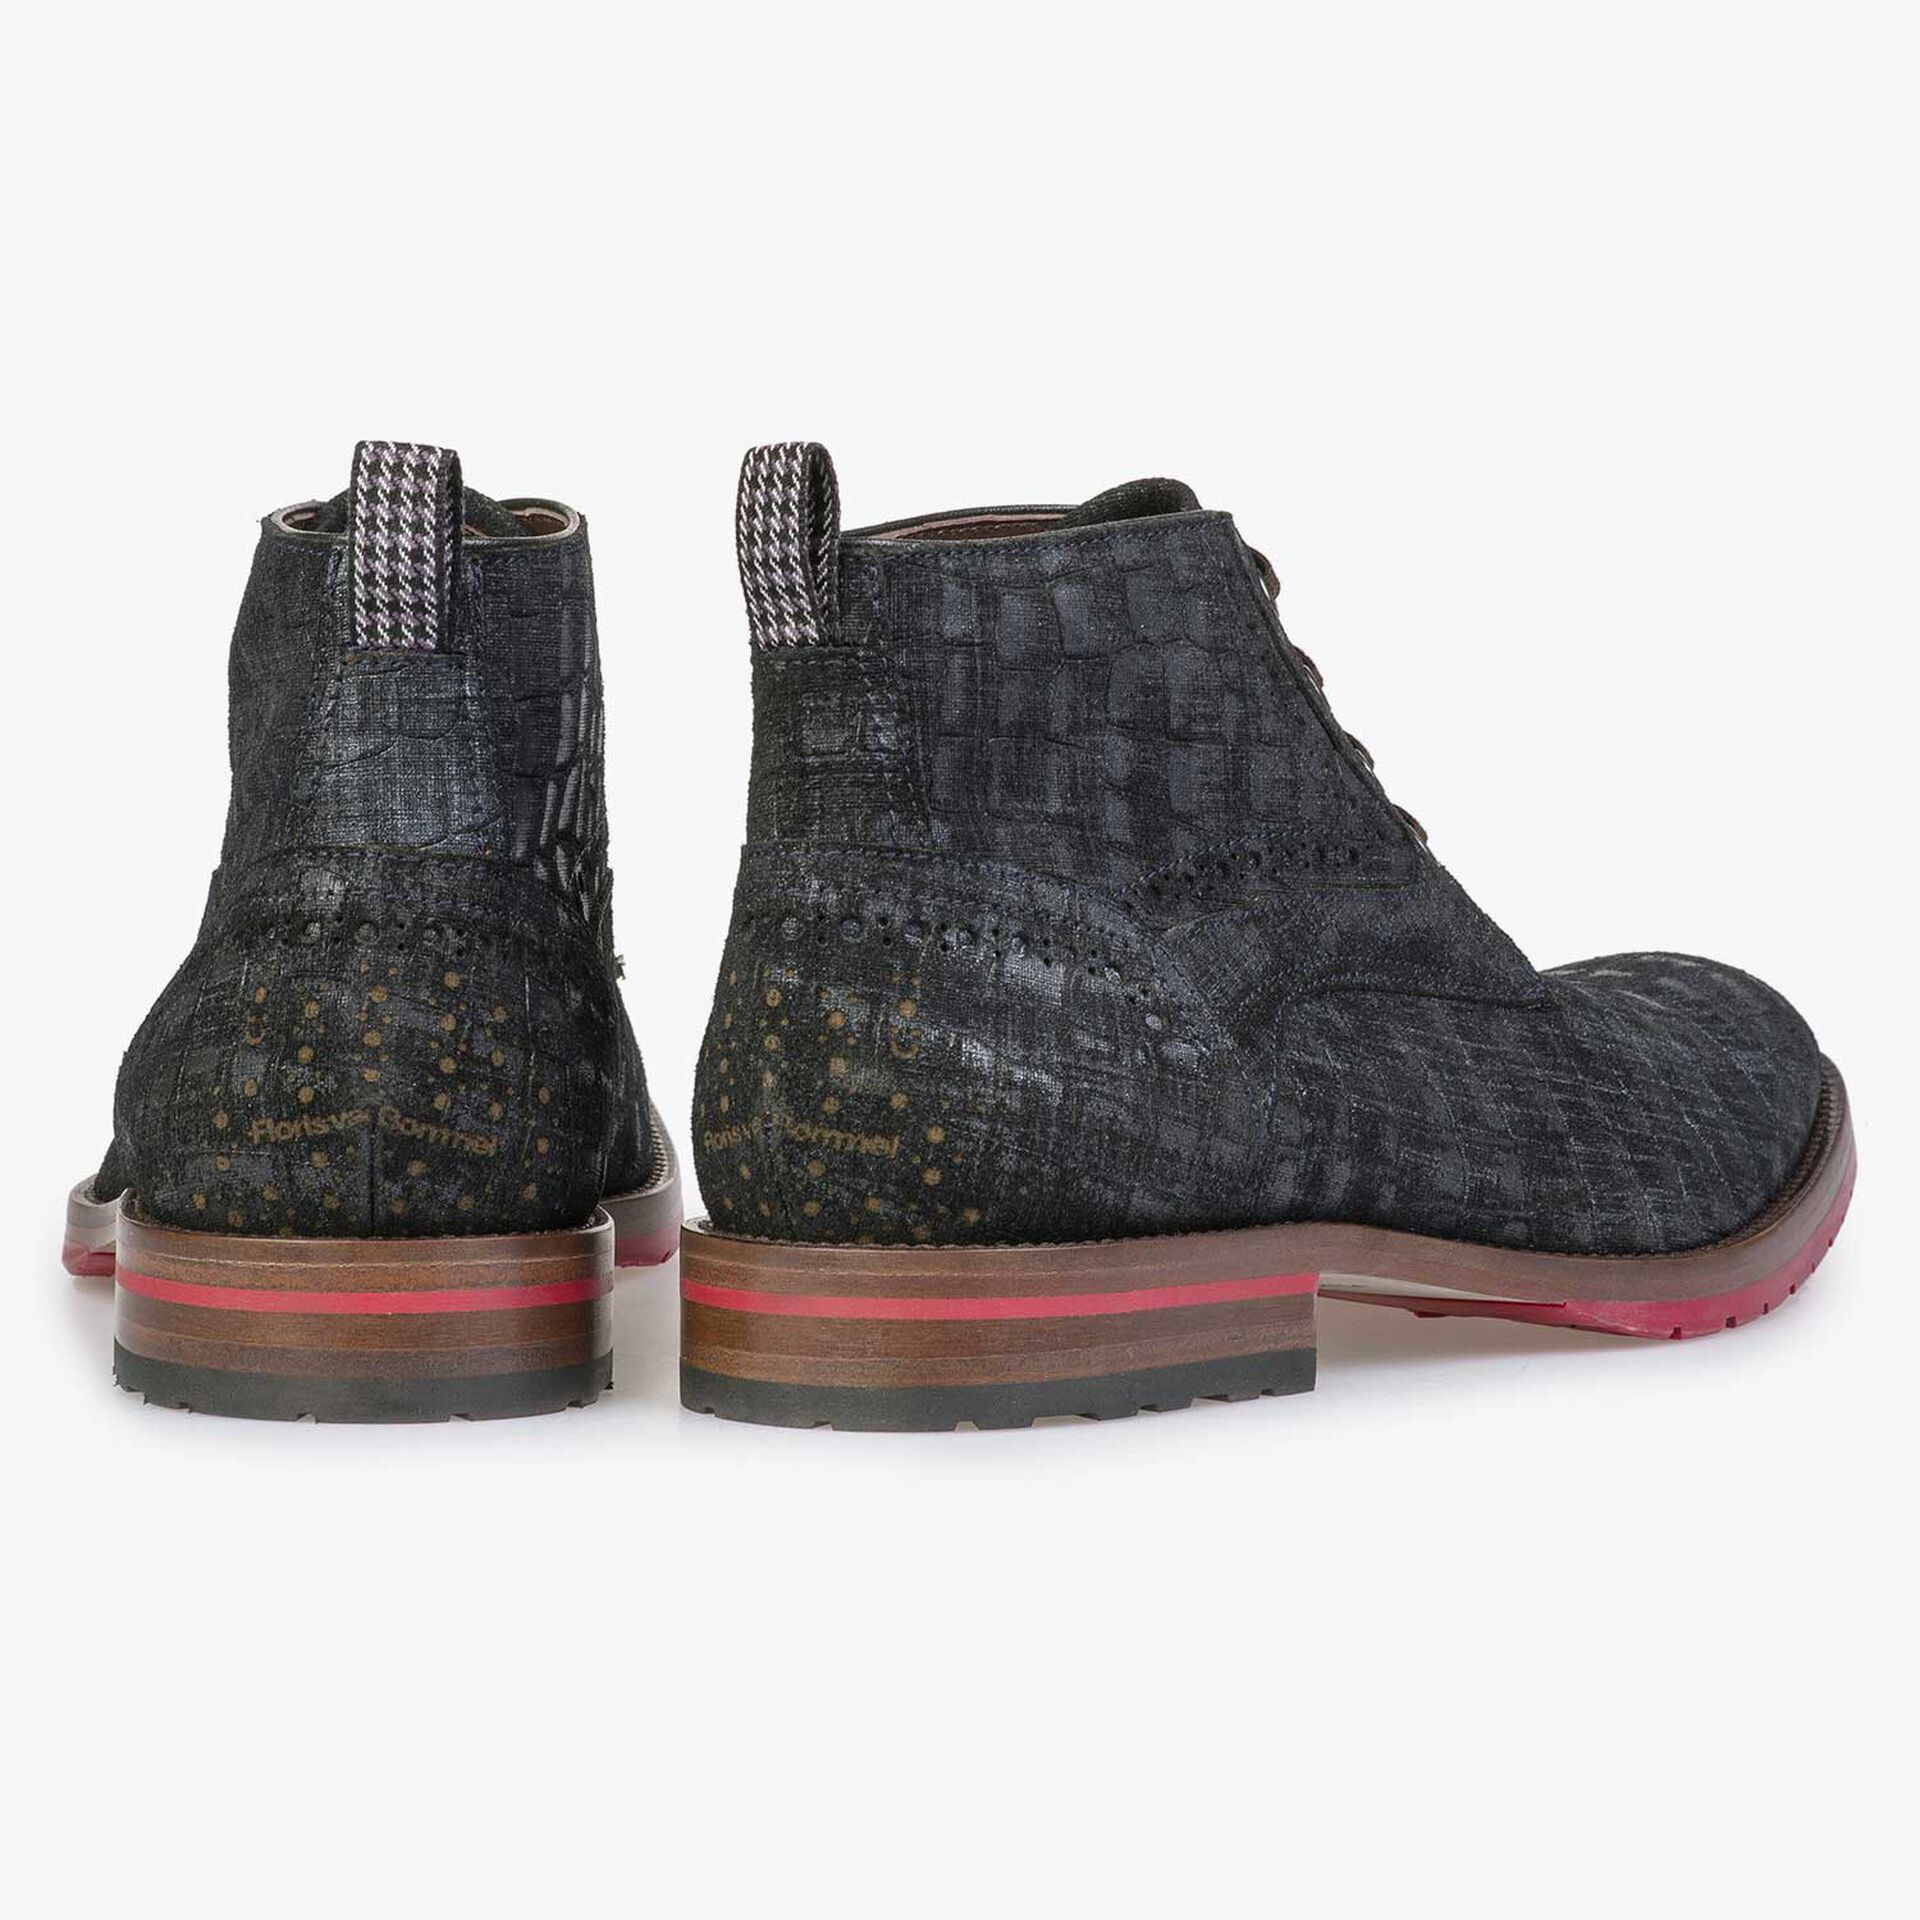 Blue suede leather lace boot with a check pattern